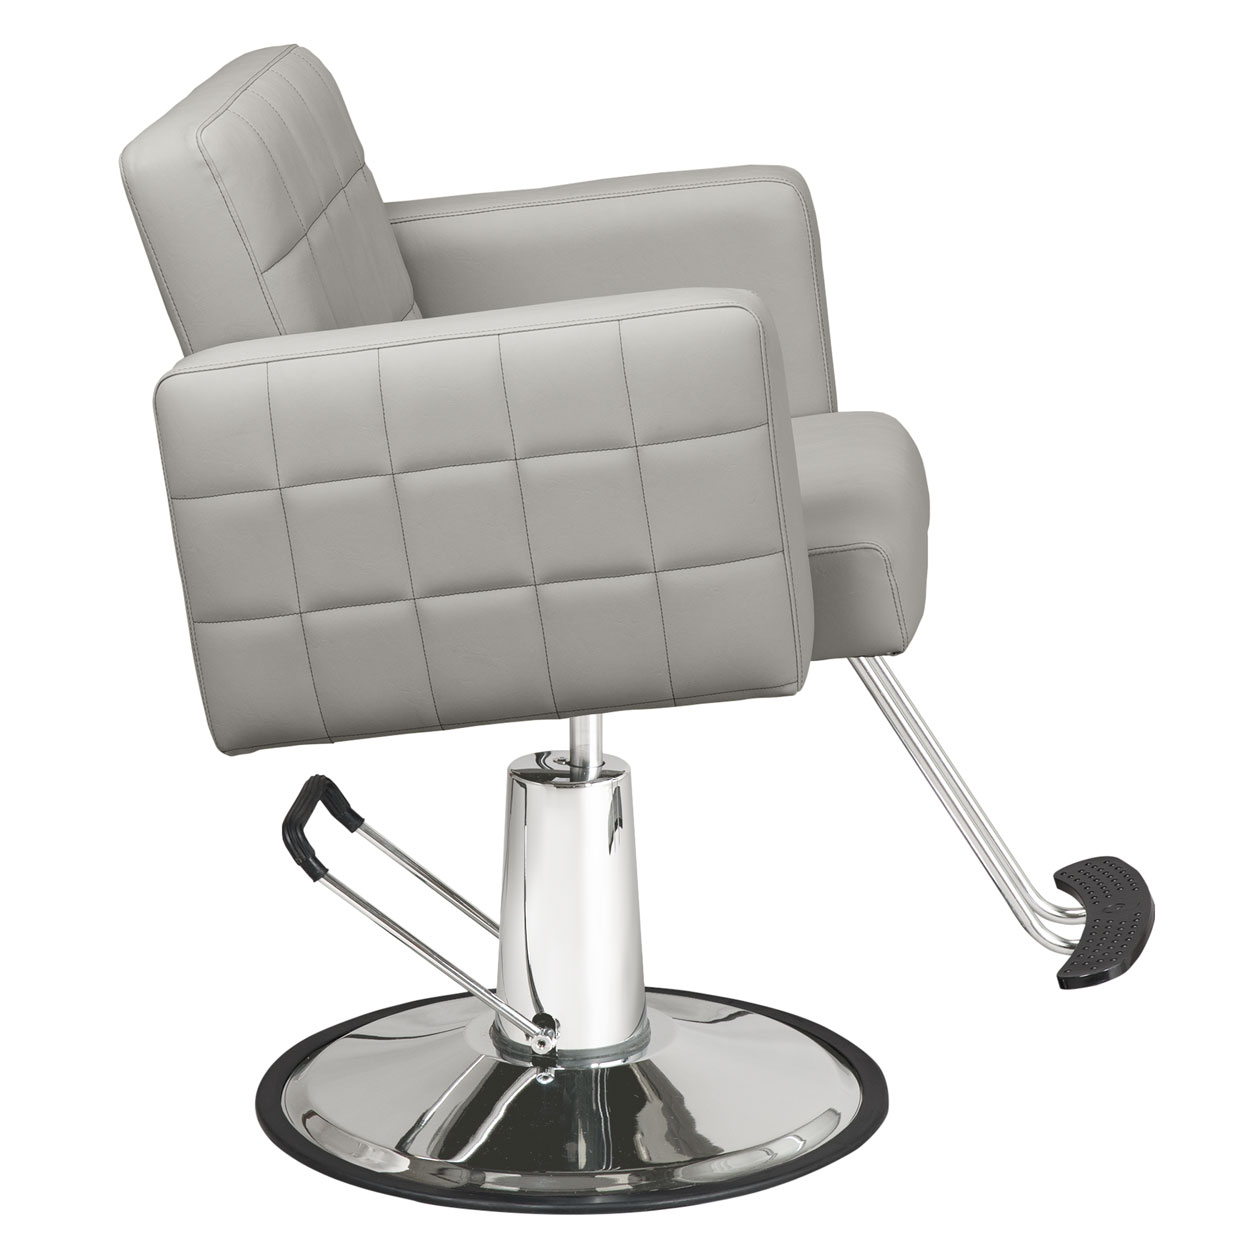 Pibbs 2106 Matera Styling Chair alternative product image 1